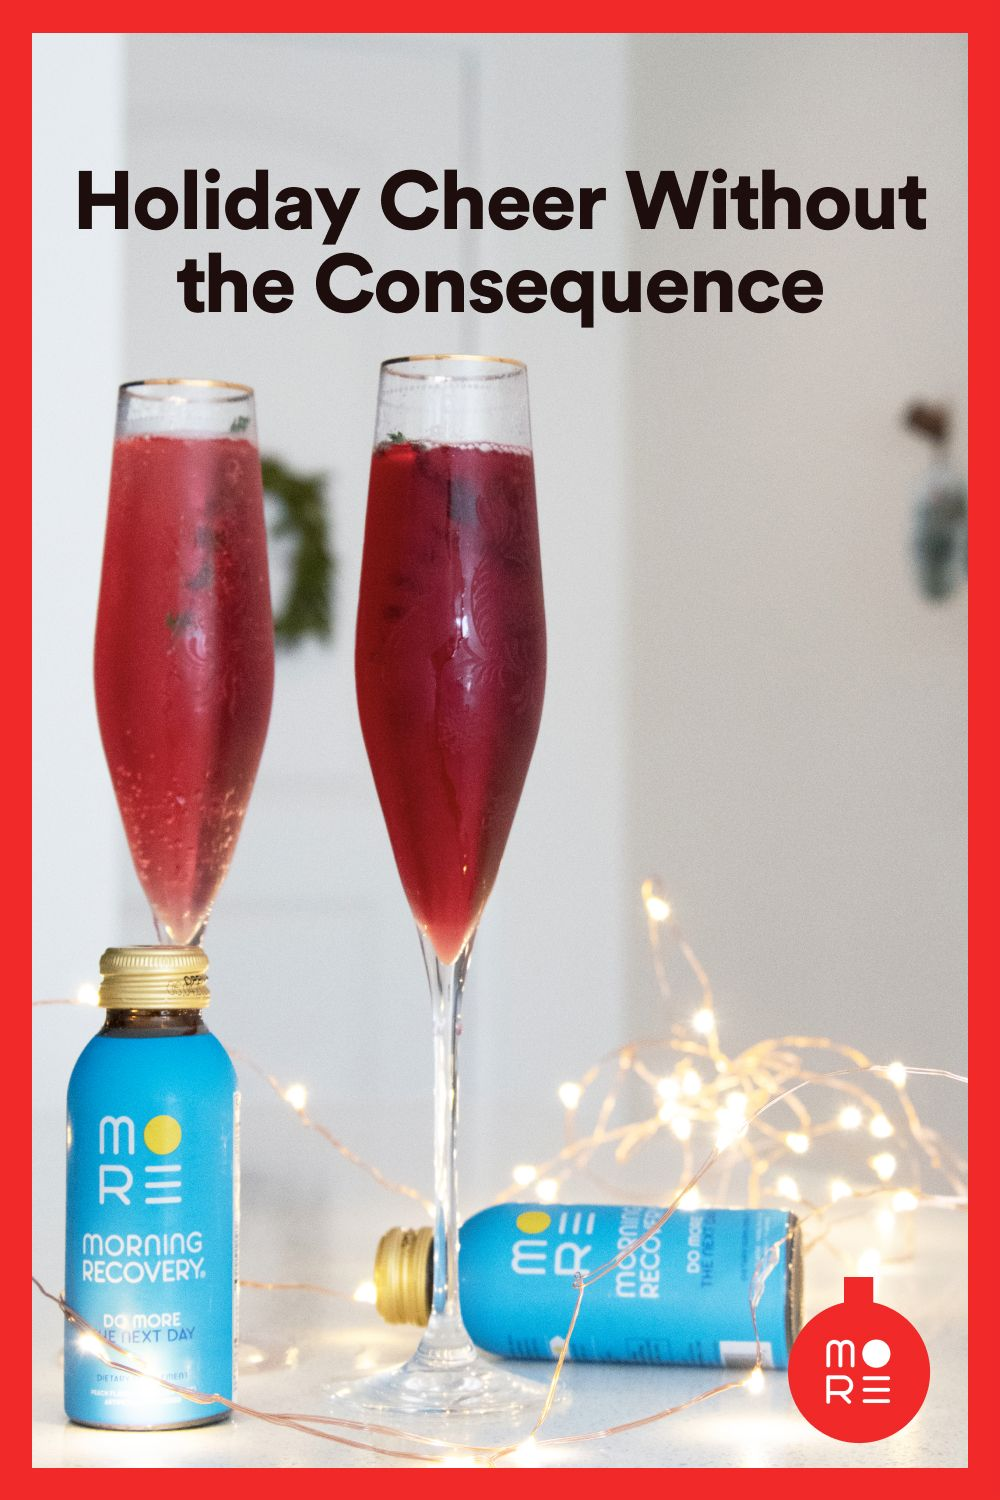 On Average Americans Consume 2x More Alcohol Over The Holidays Than Any Other Time Of Year Drink Smart With Mor Drinking Accessories Hangover Remedies Drinks